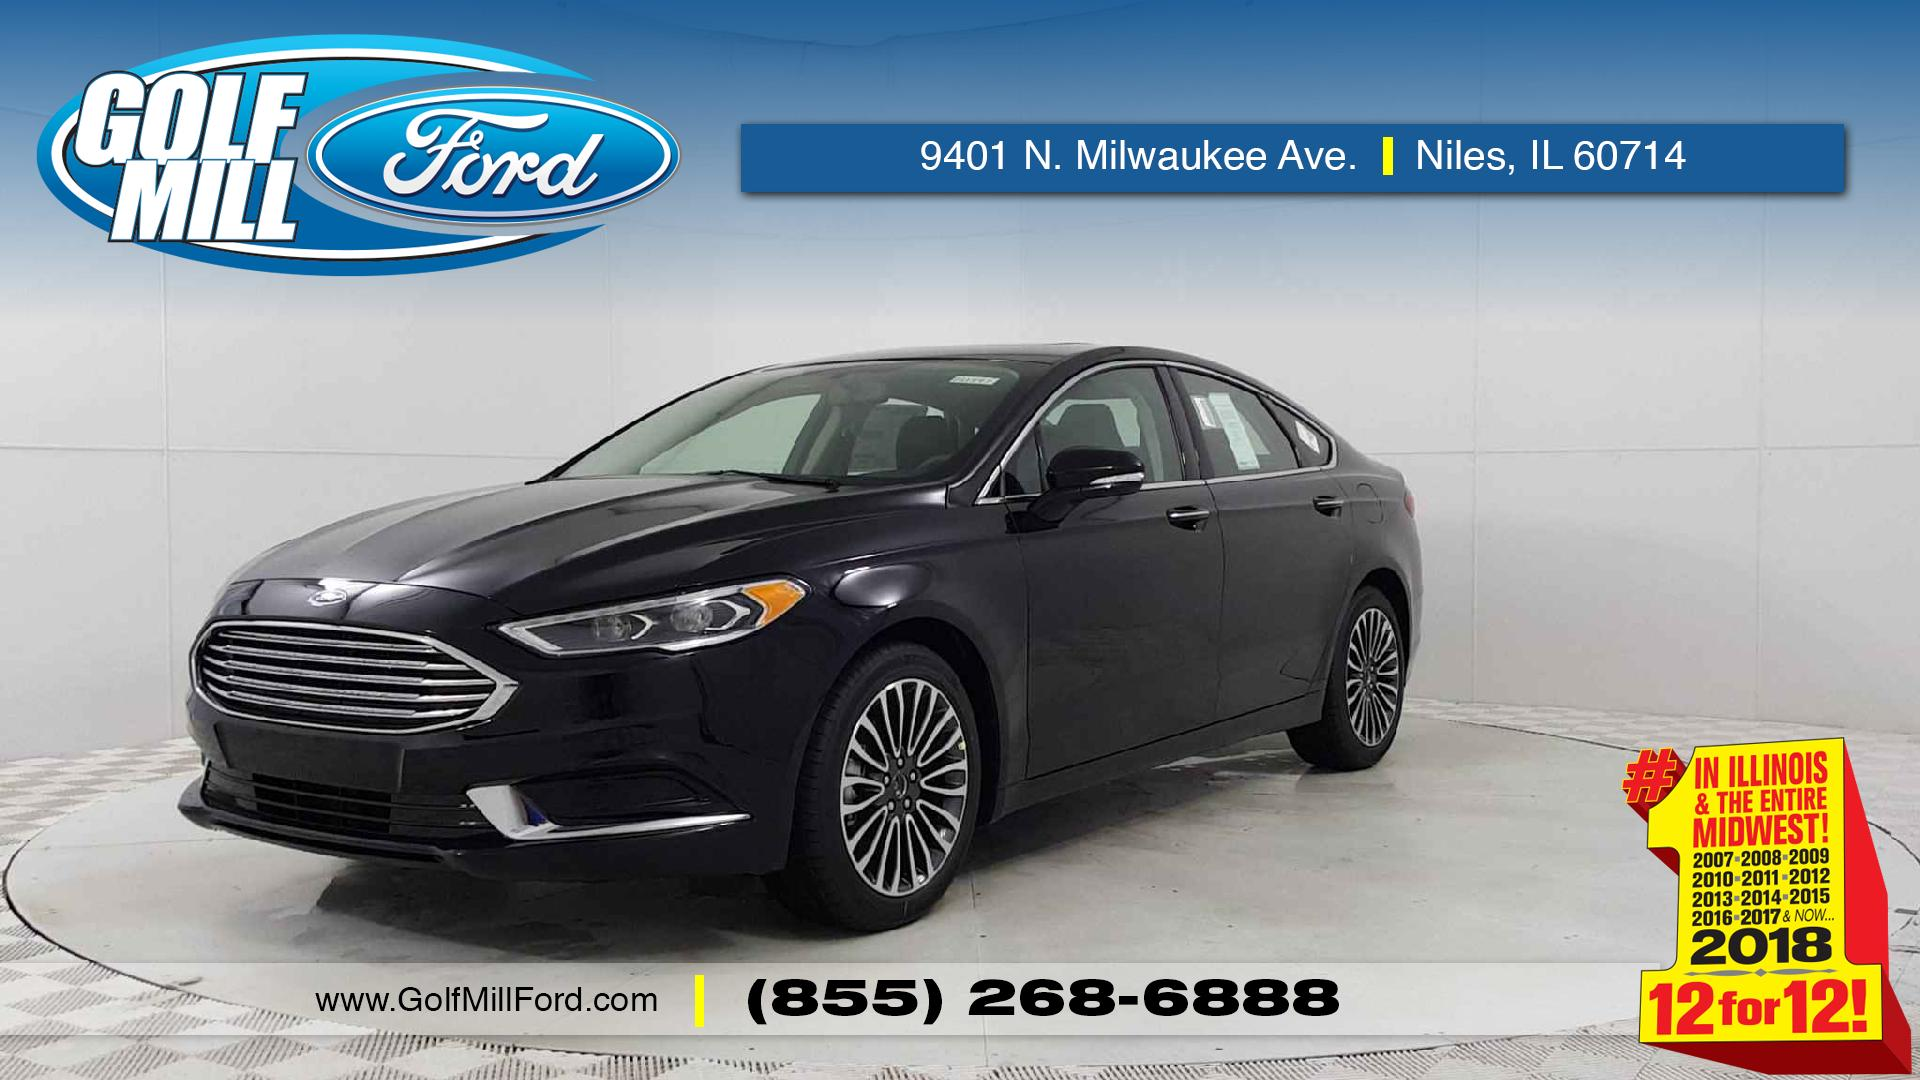 New 2018 Ford Fusion SE near Melrose Park IL Golf Mill Ford